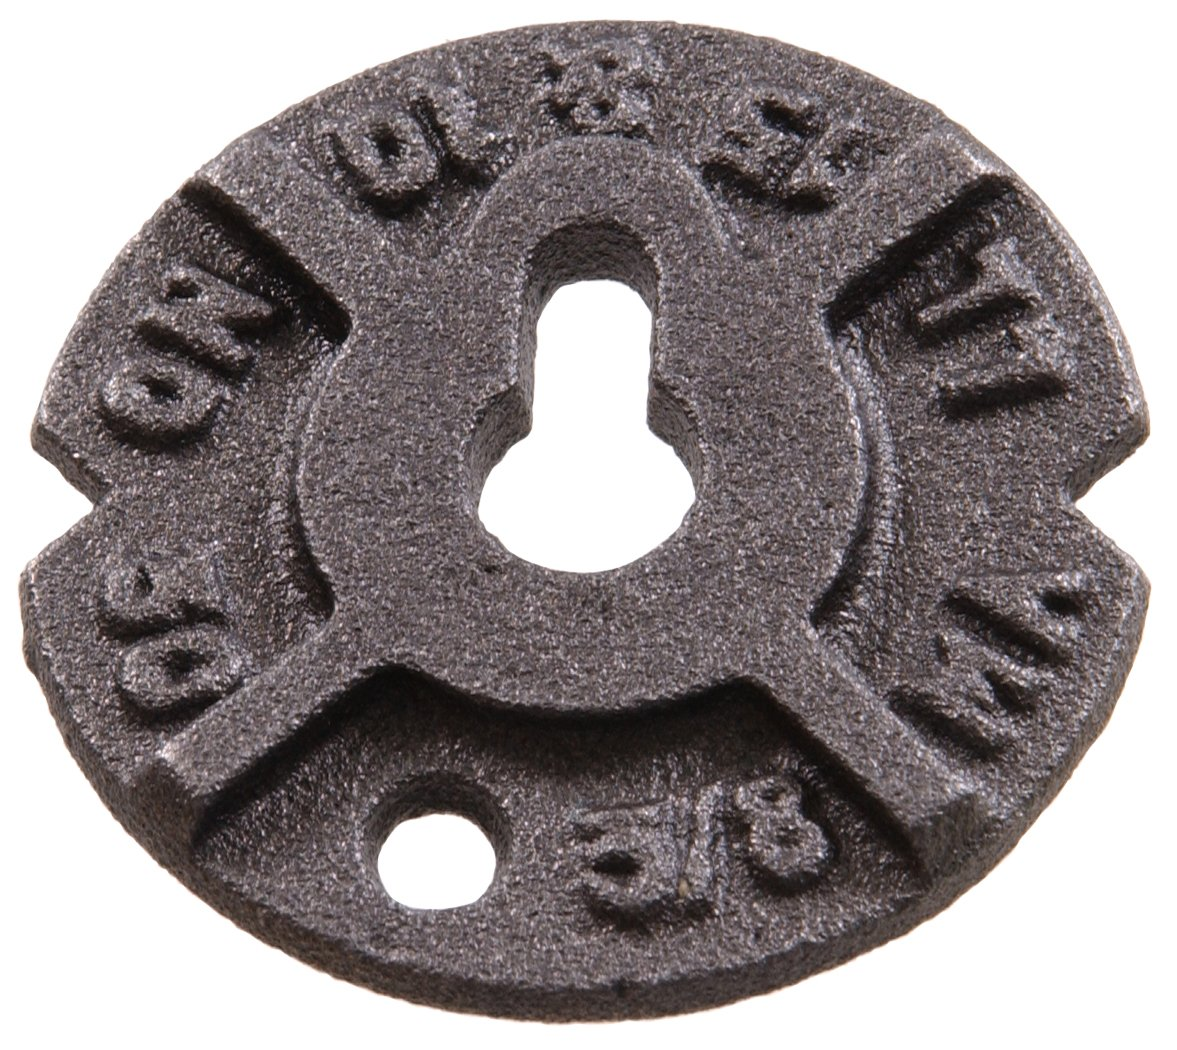 The Hillman Group 290136 5/8-Inch Malleable Washer, 5-Pound-Pack